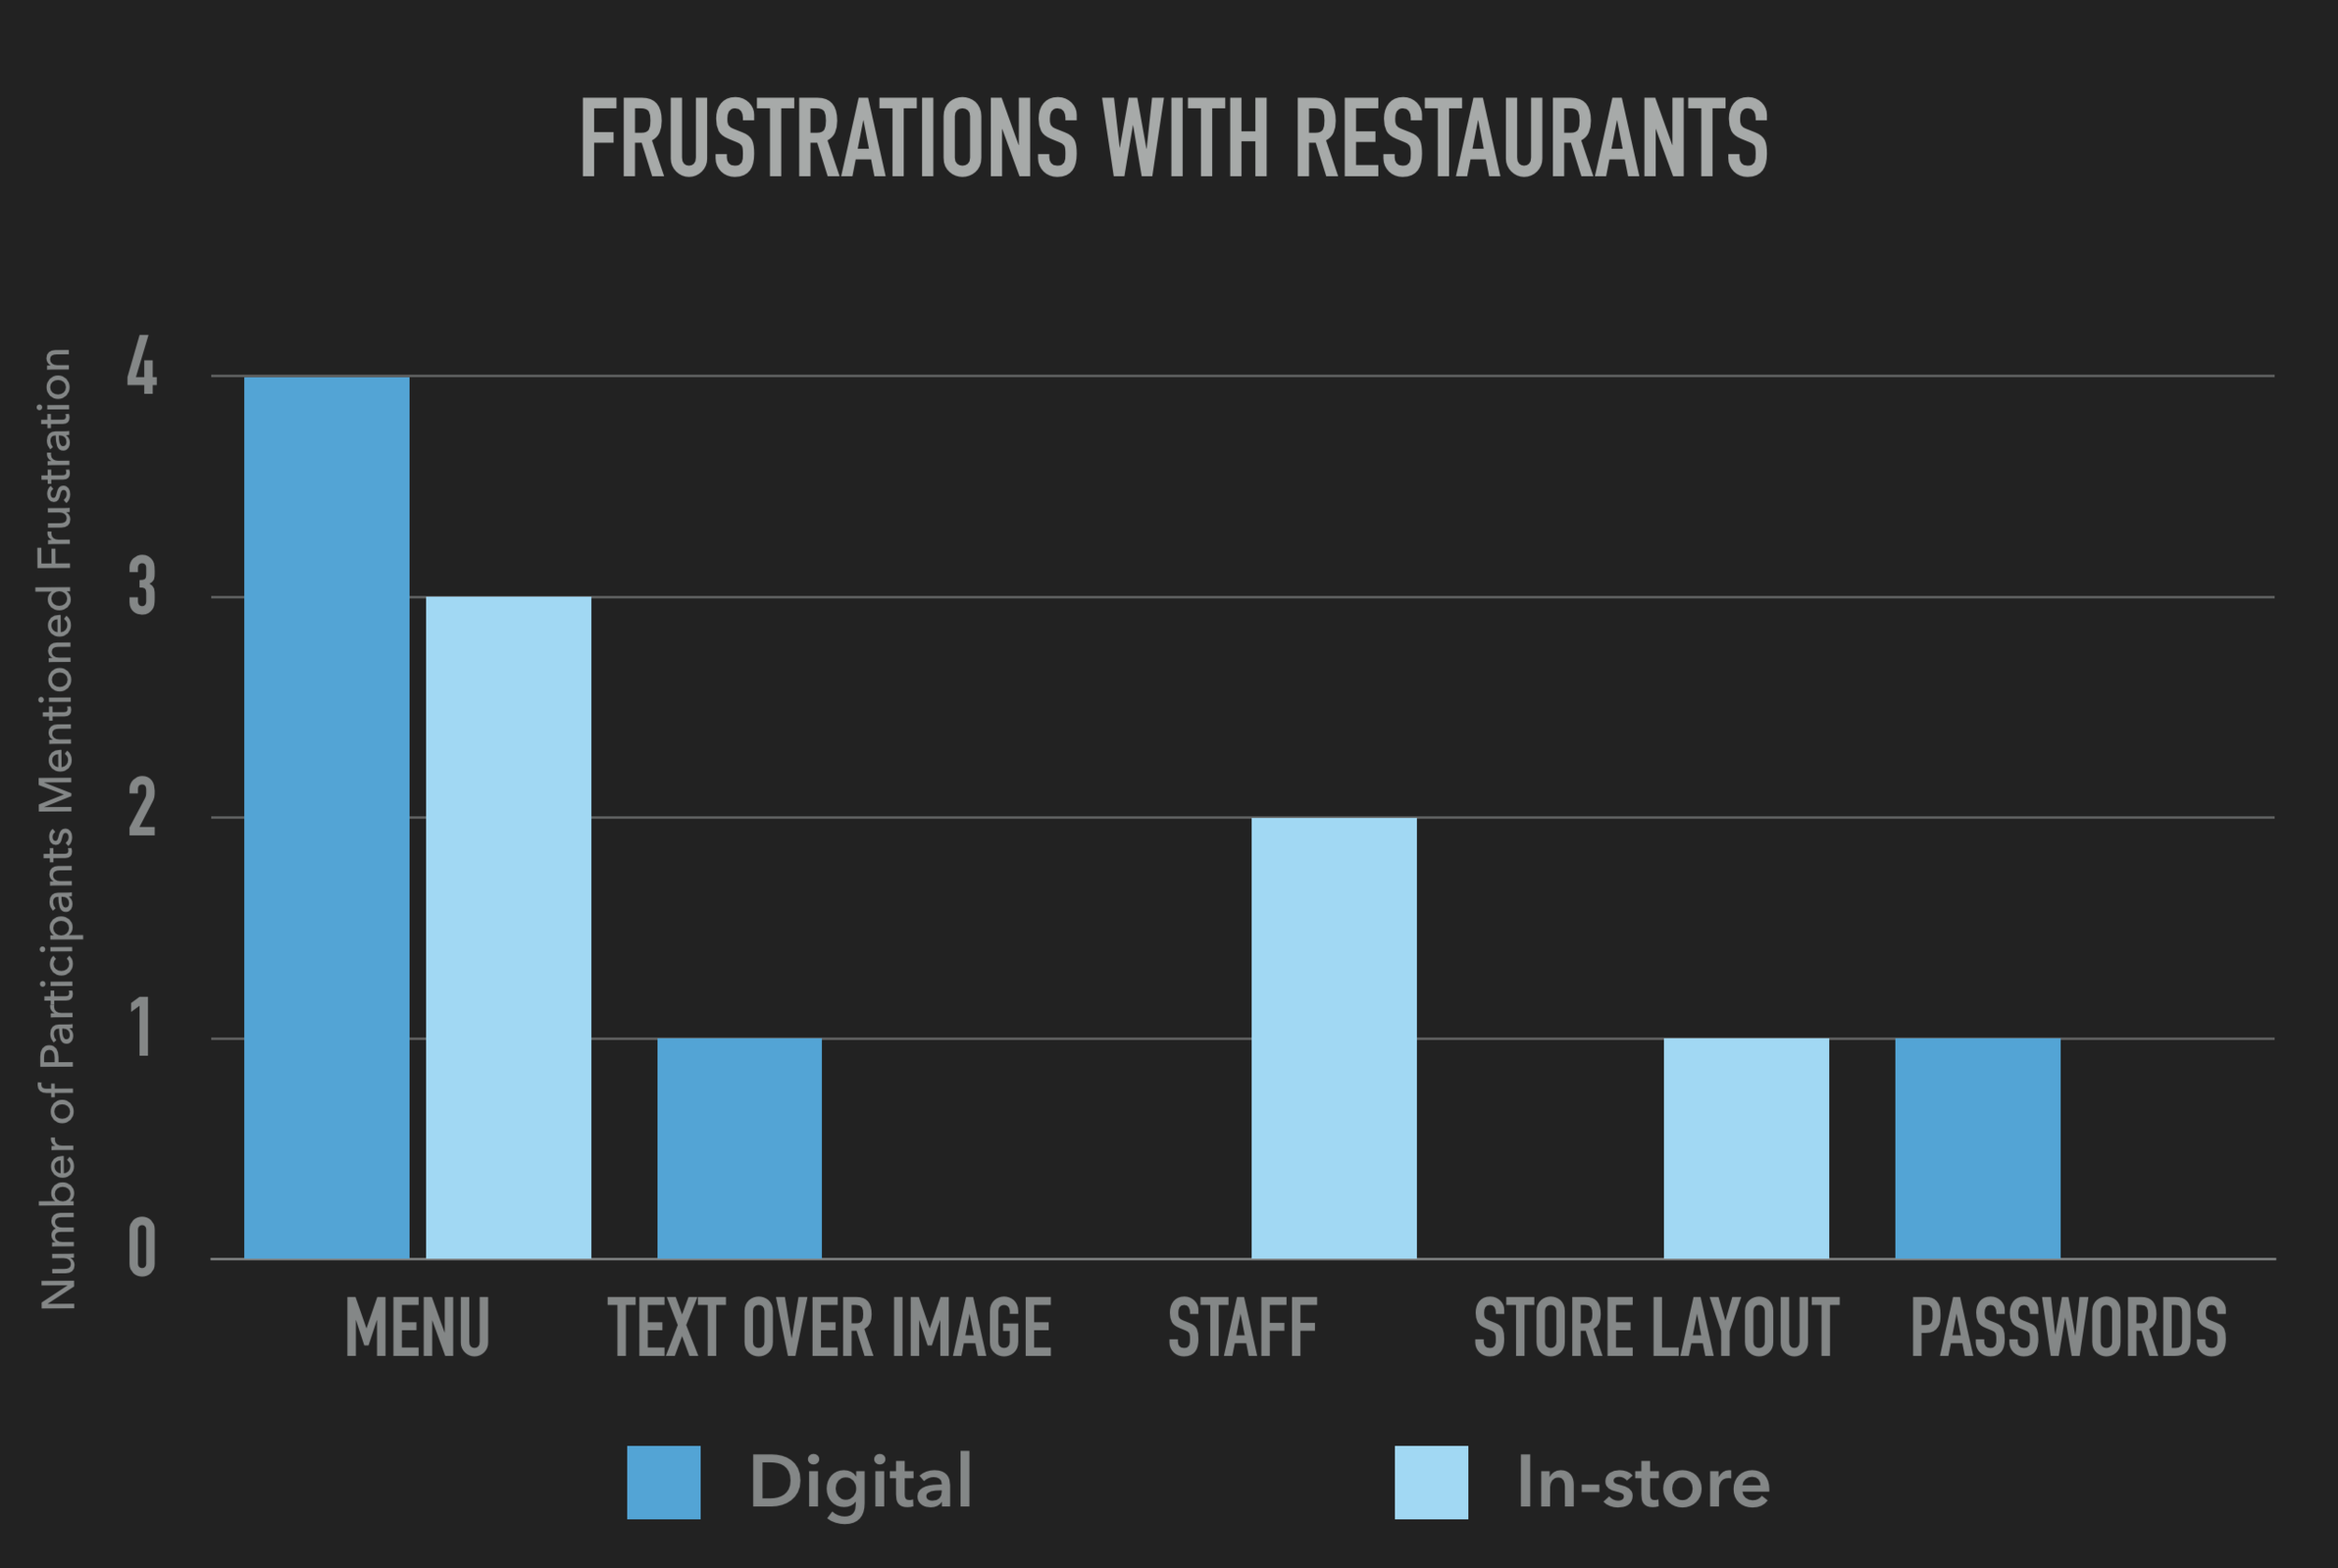 GRaph_Frustrations_for_People_with_Disabilites_restaurants.png